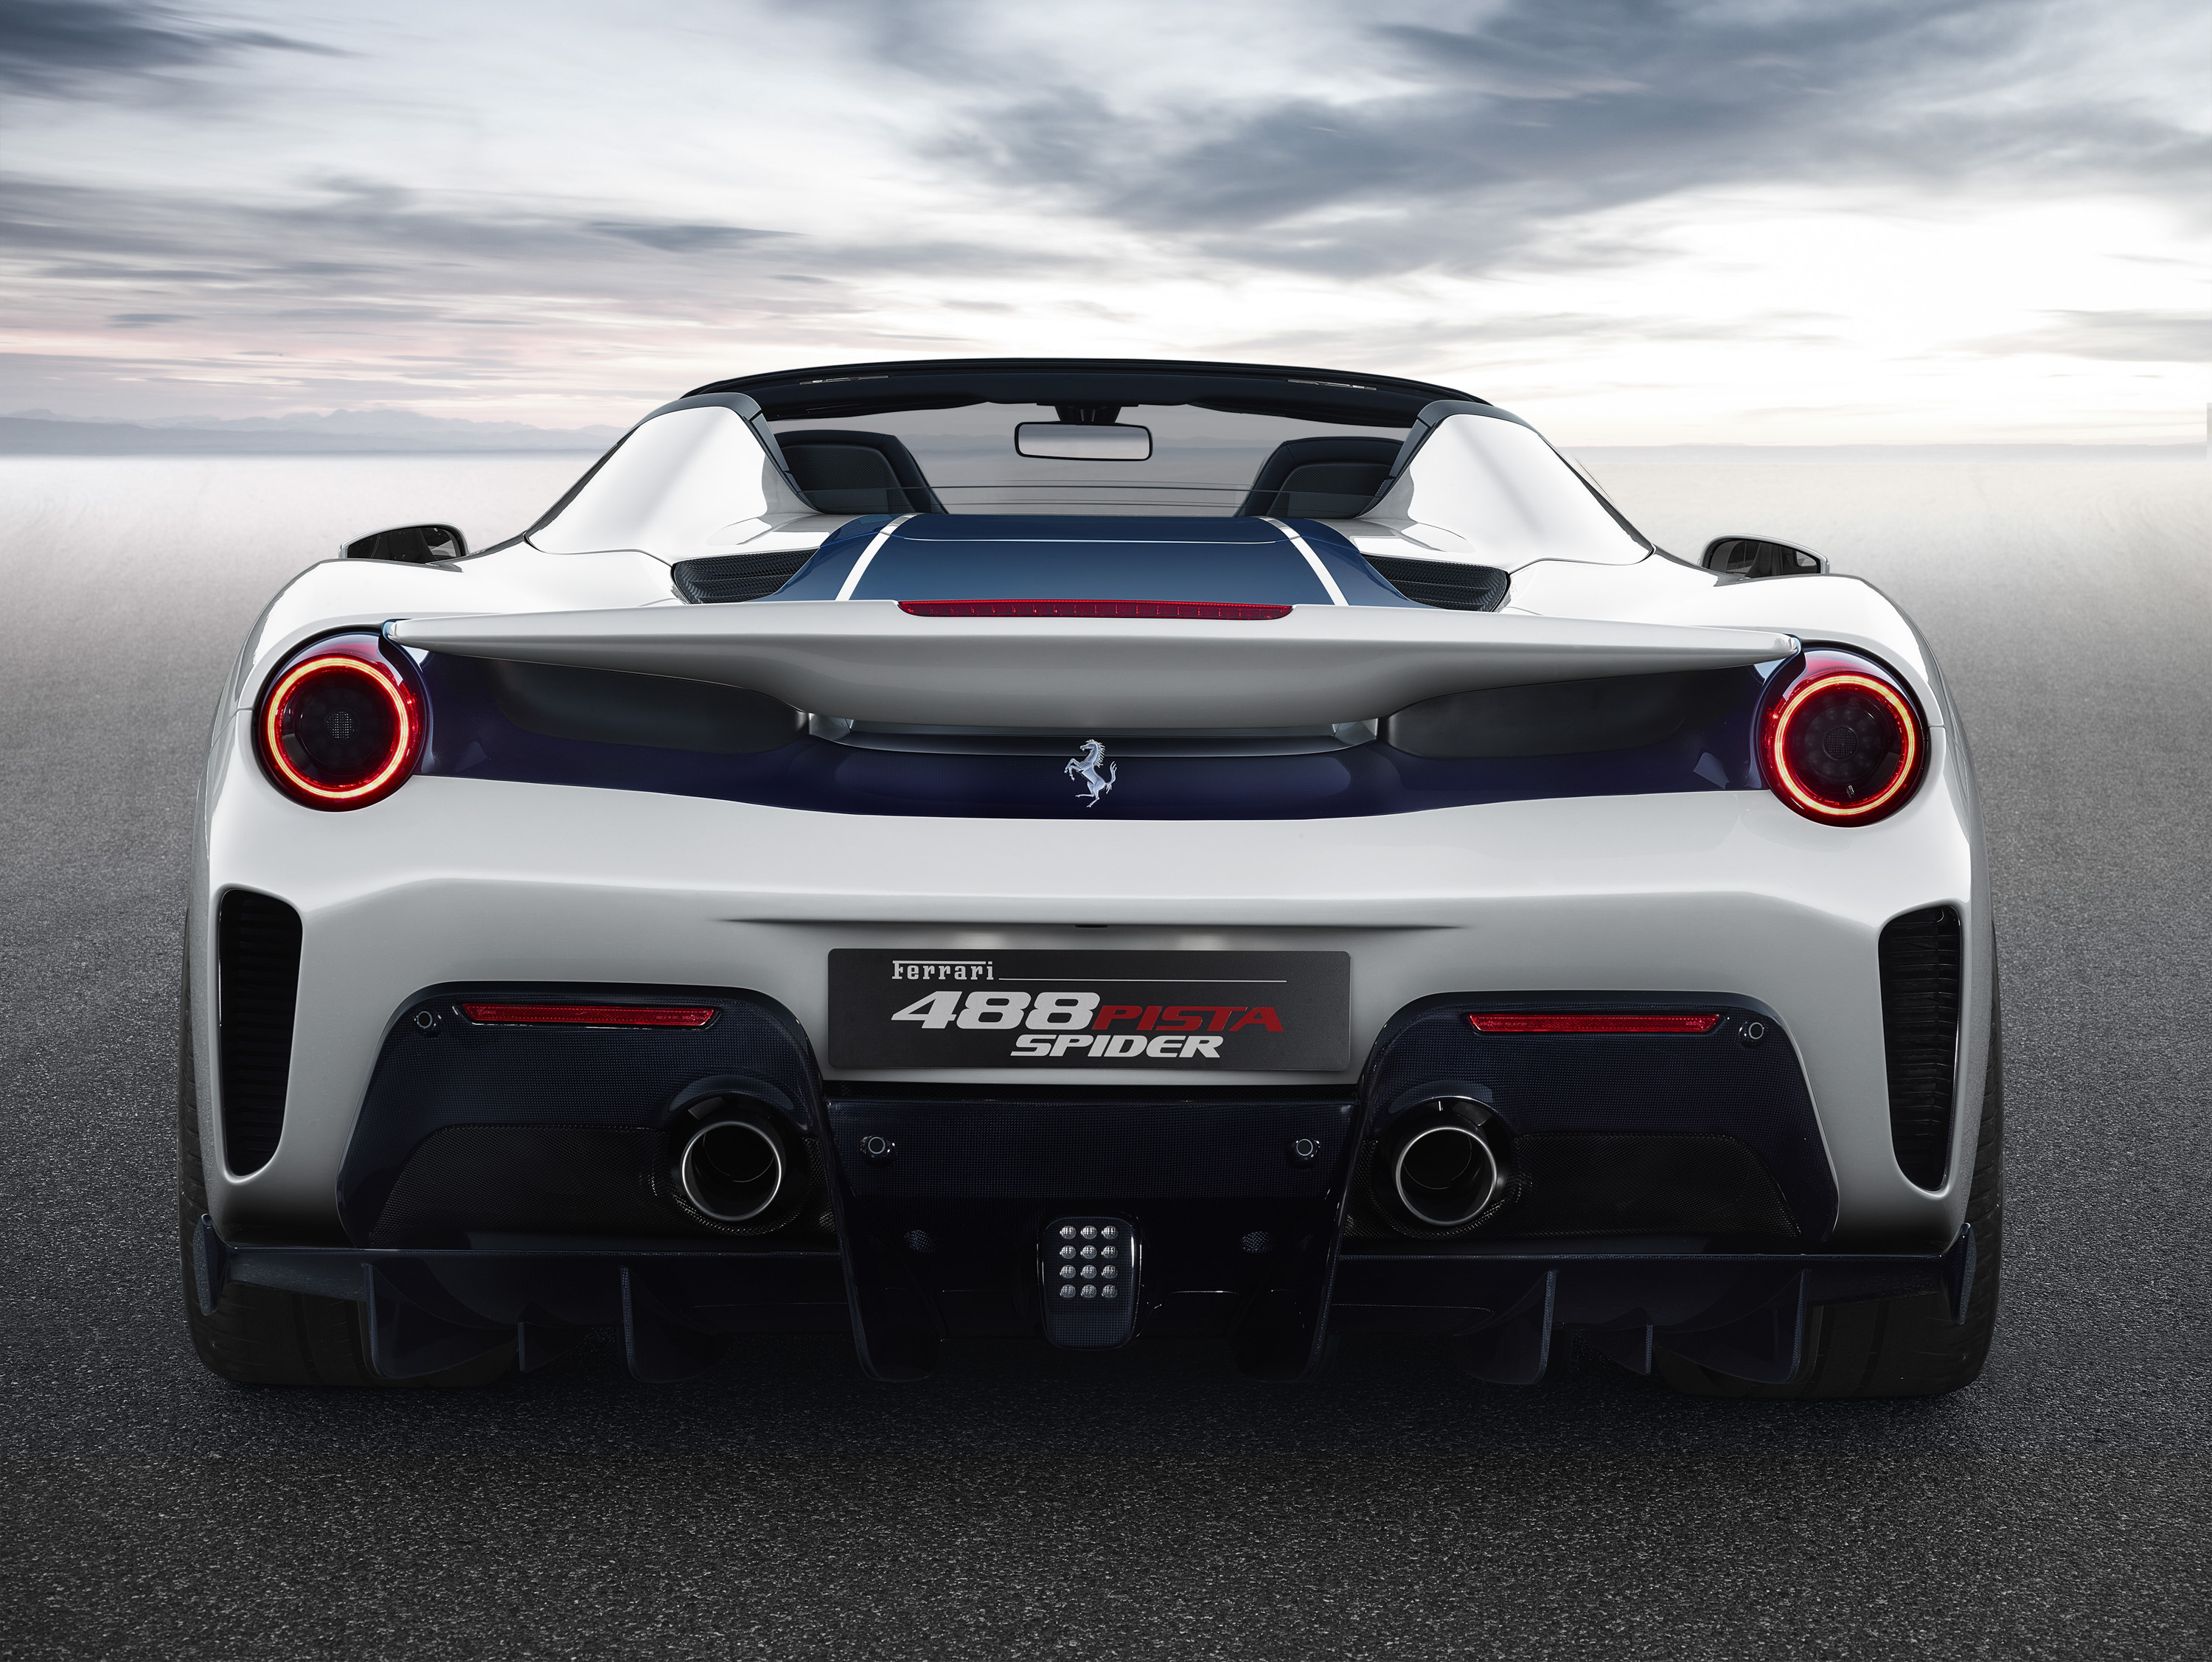 2019 Ferrari 488 Pista Spider Top Speed